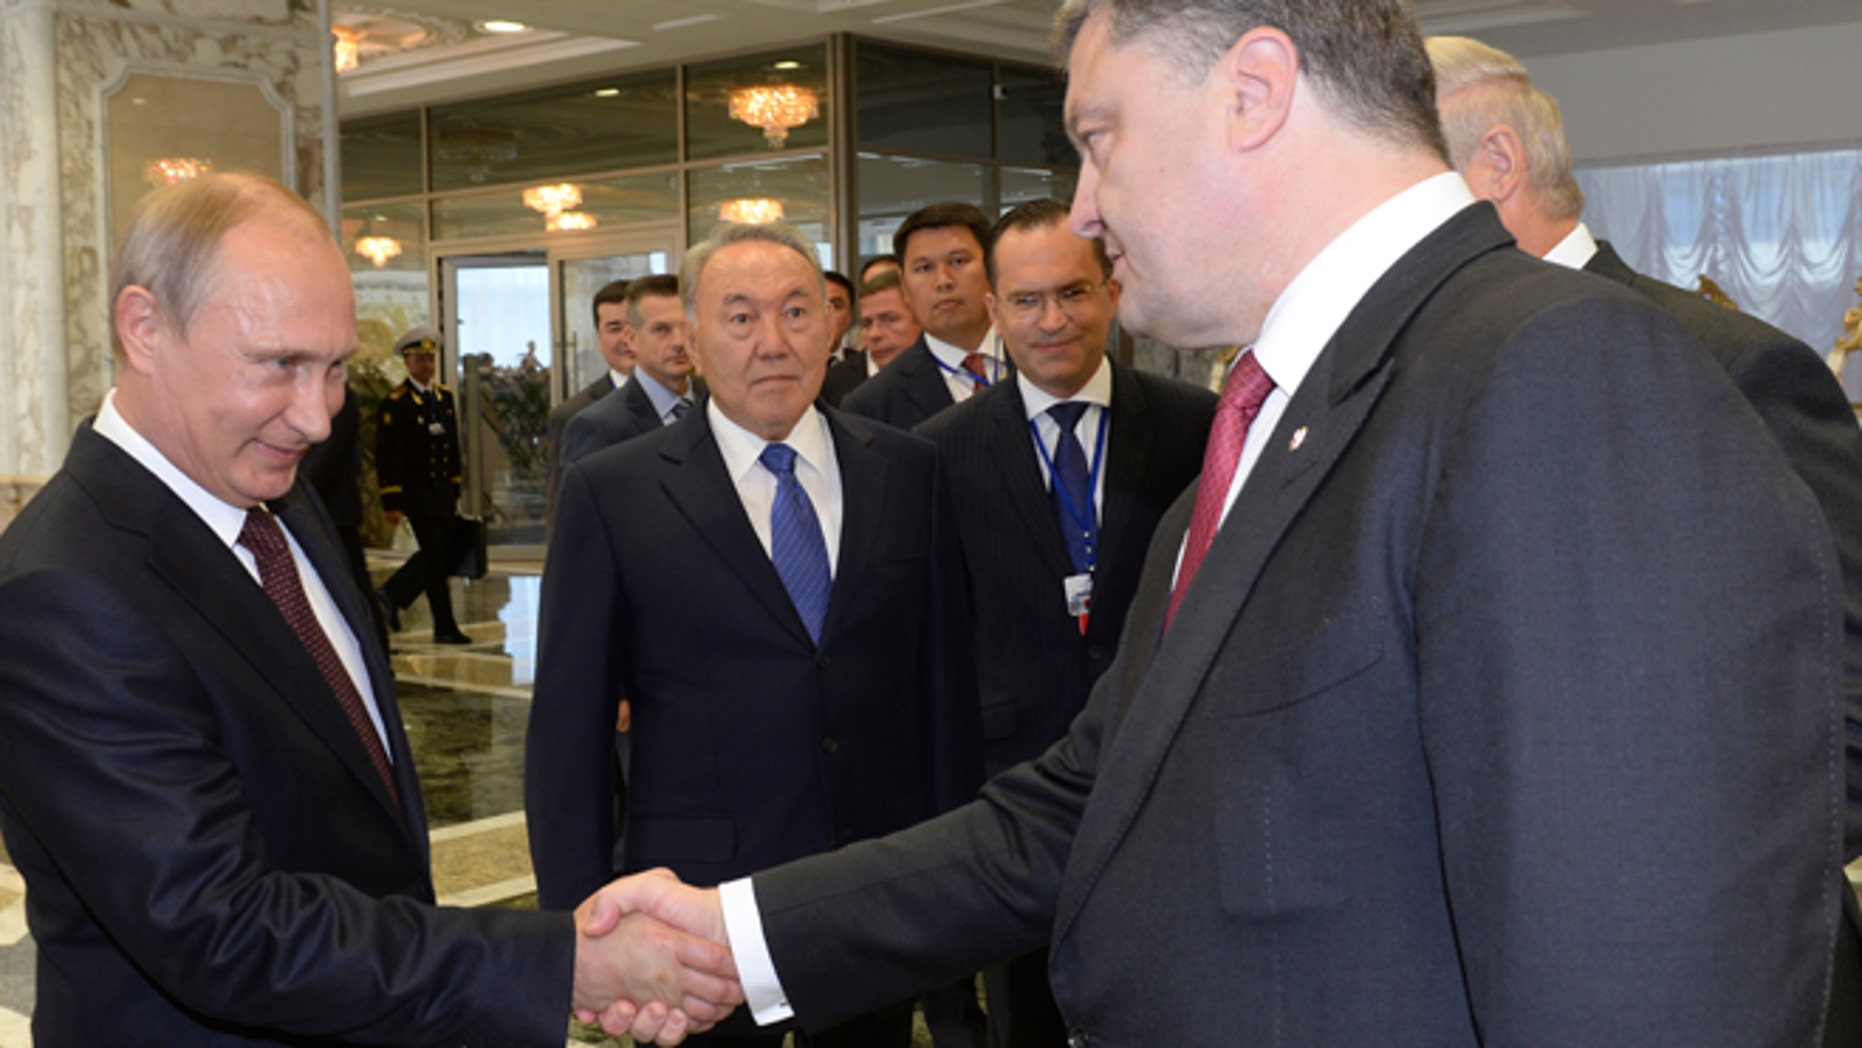 Aug. 26, 2014: Russian President Vladimir Putin, left, shakes hands with Ukrainian President Petro Poroshenko, right, as Kazakh President Nursultan Nazarbayev, center, looks at them, prior to their talks after after posing for a photo in Minsk, Belarus. Leaders of Russia, Belarus, two other former Soviet republics as well as top EU officials are meeting in Minsk, Belarus, for a highly anticipated summit to discuss the crisis in Ukraine which has left more than 2,000 dead and displaced over 300,000 people.